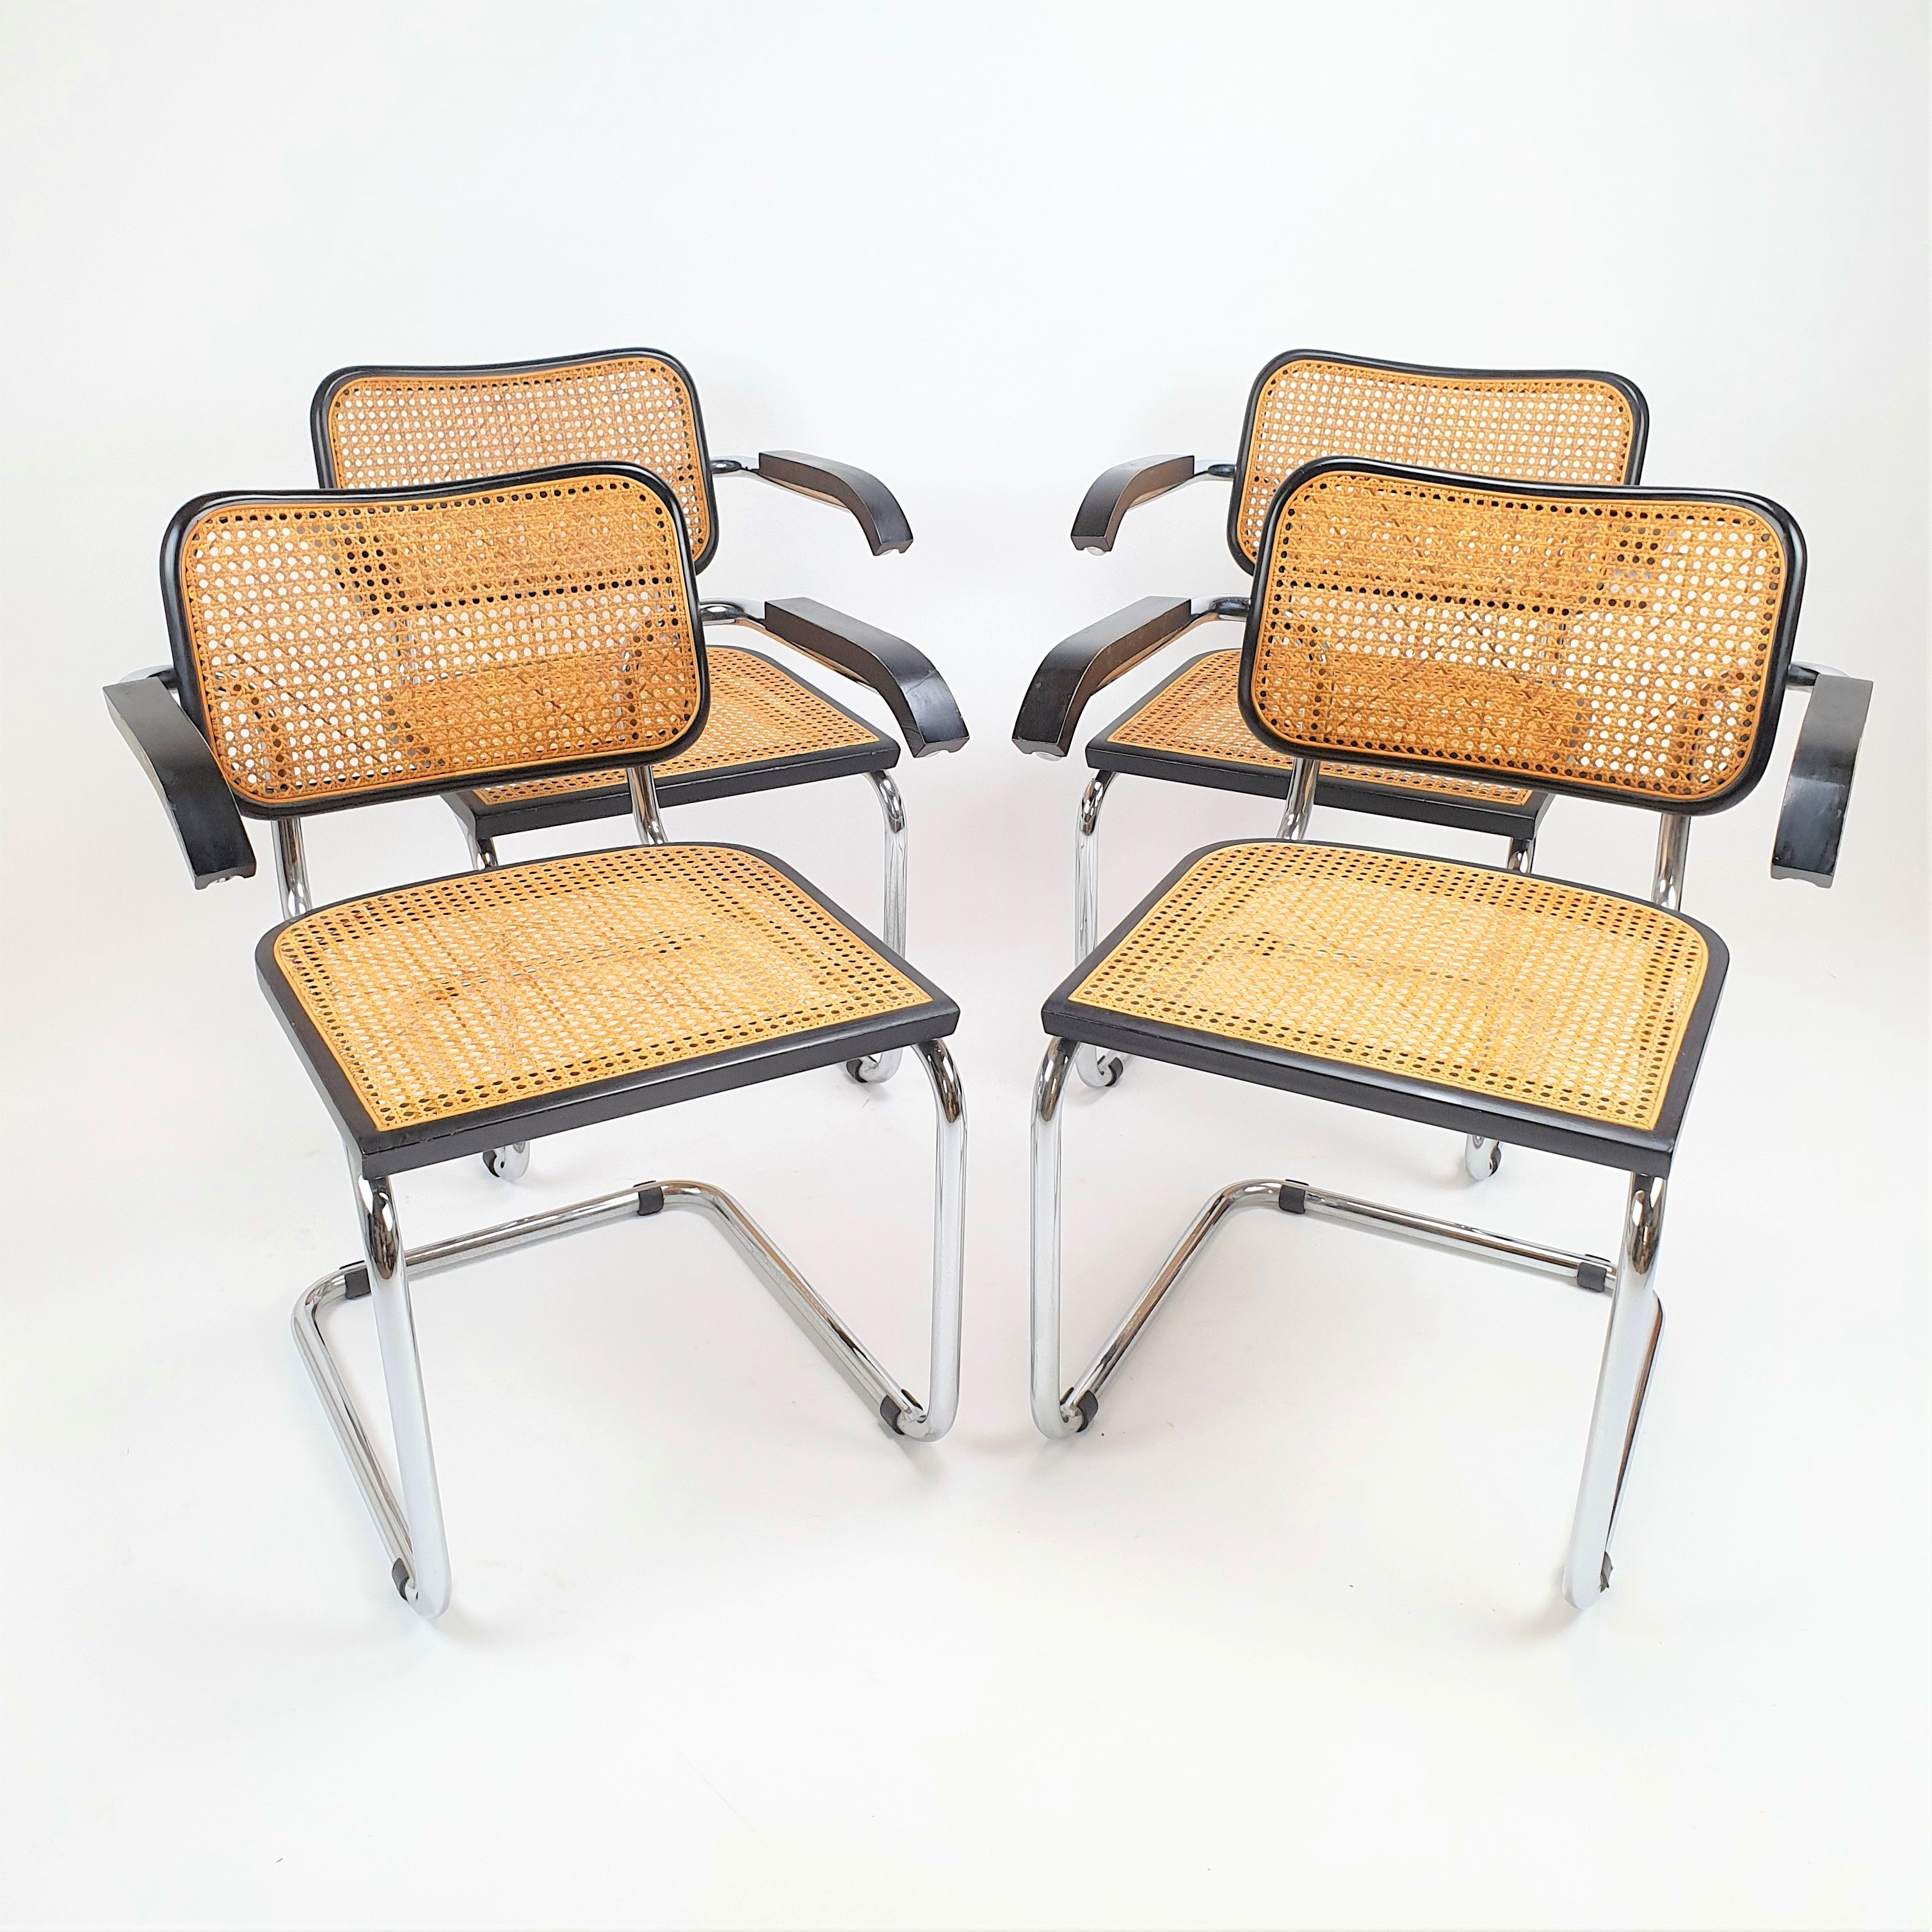 Miraculous Set Of 4 Marcel Breuer S64 Thonet Dining Chairs 1970S 104522 Pdpeps Interior Chair Design Pdpepsorg